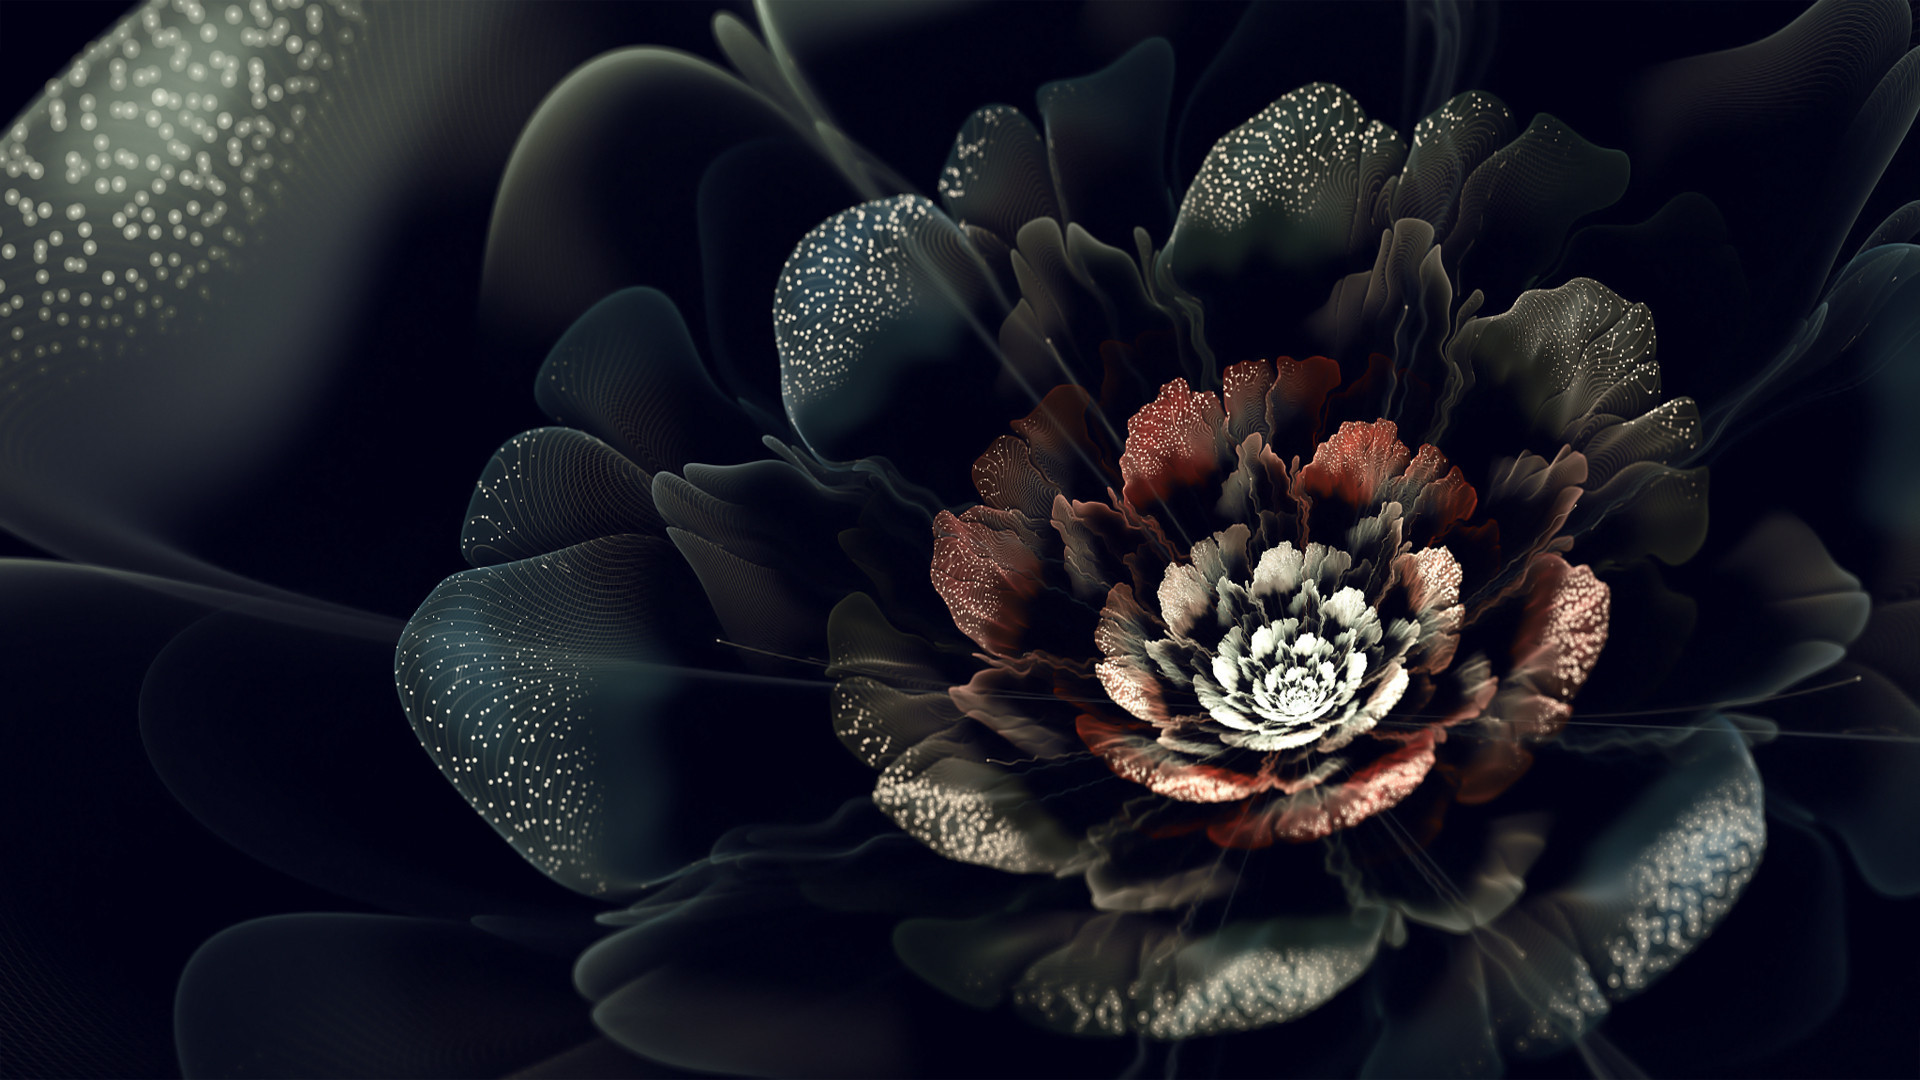 Black Roses Wallpapers & Pictures : Find best latest Black Roses Wallpapers  & Pictures in HD for your PC desktop background and mobile phones.